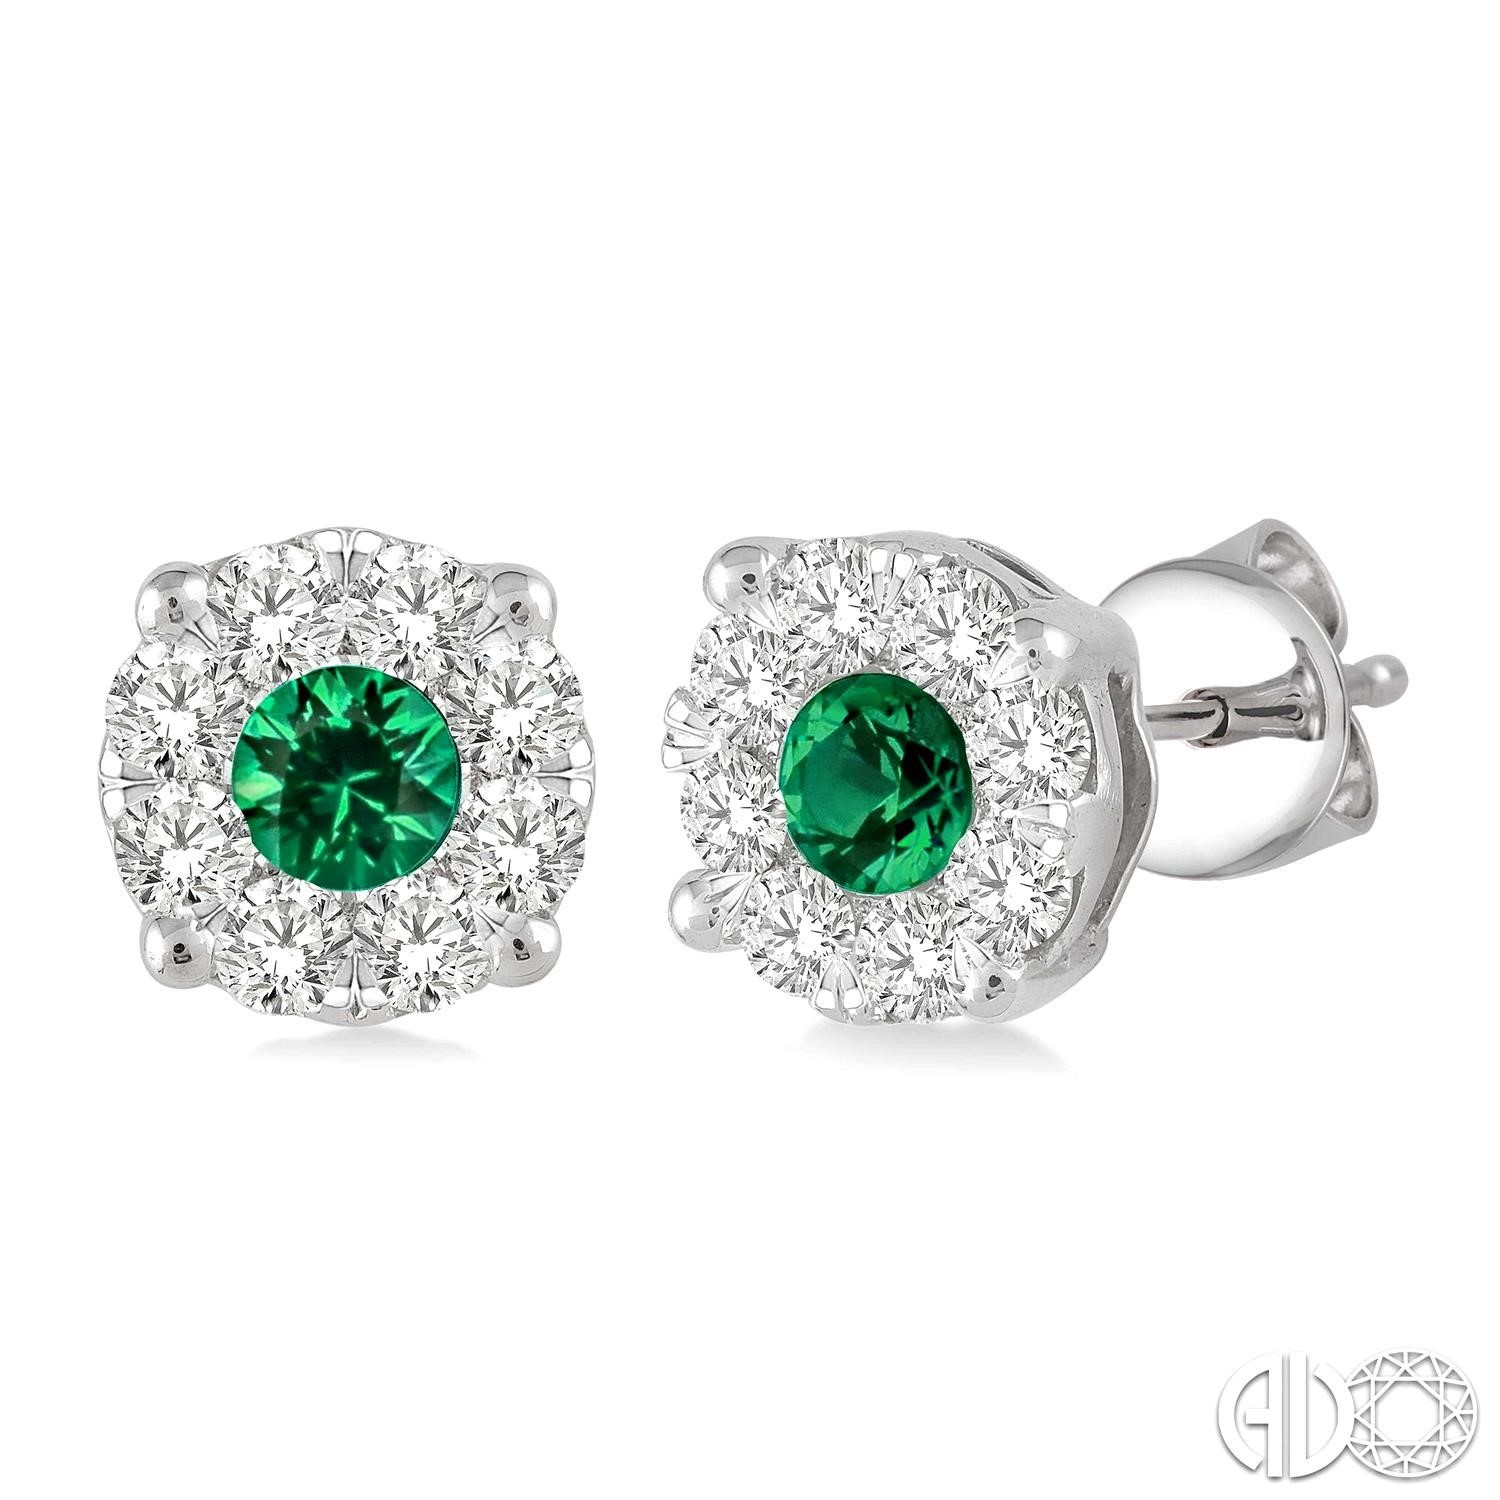 3.2 mm Round Cut Emerald and 1/2 Ctw Lovebright Diamond Earrings in 14K White Gold